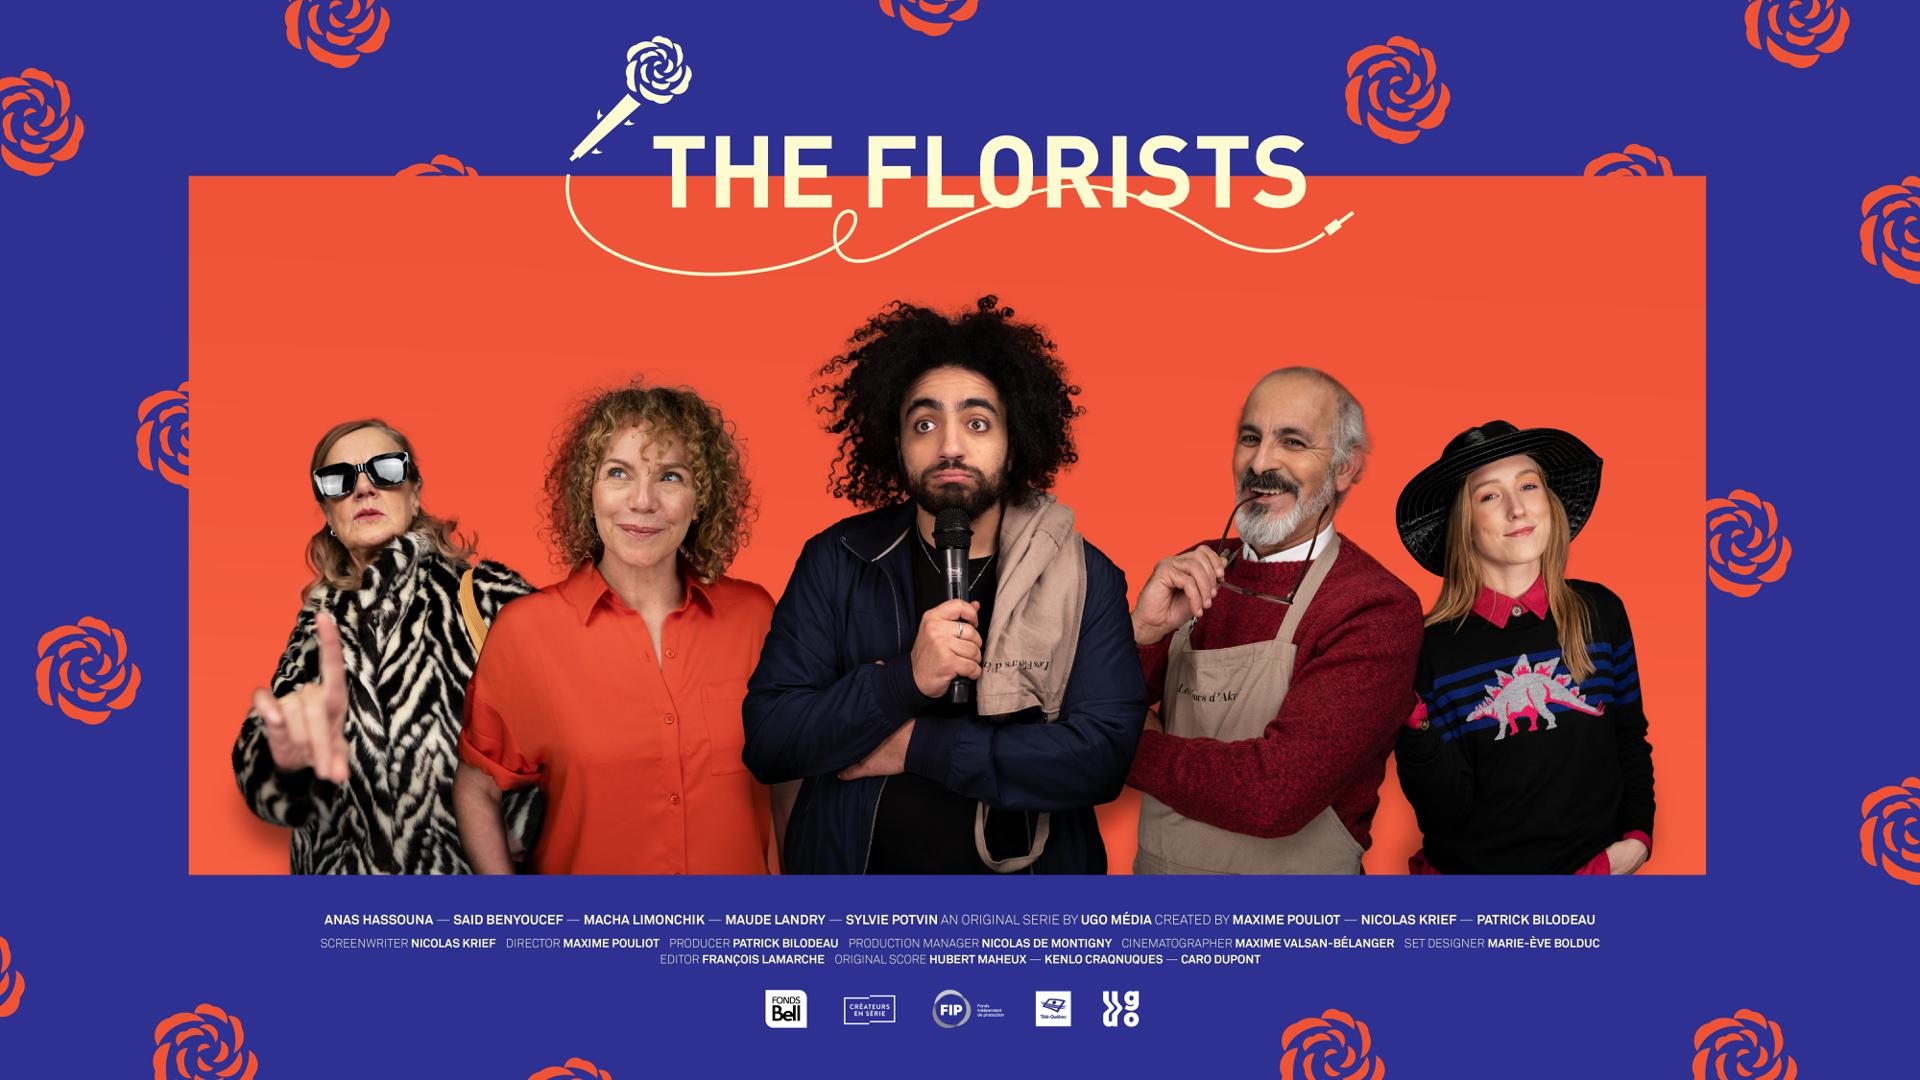 The Florists